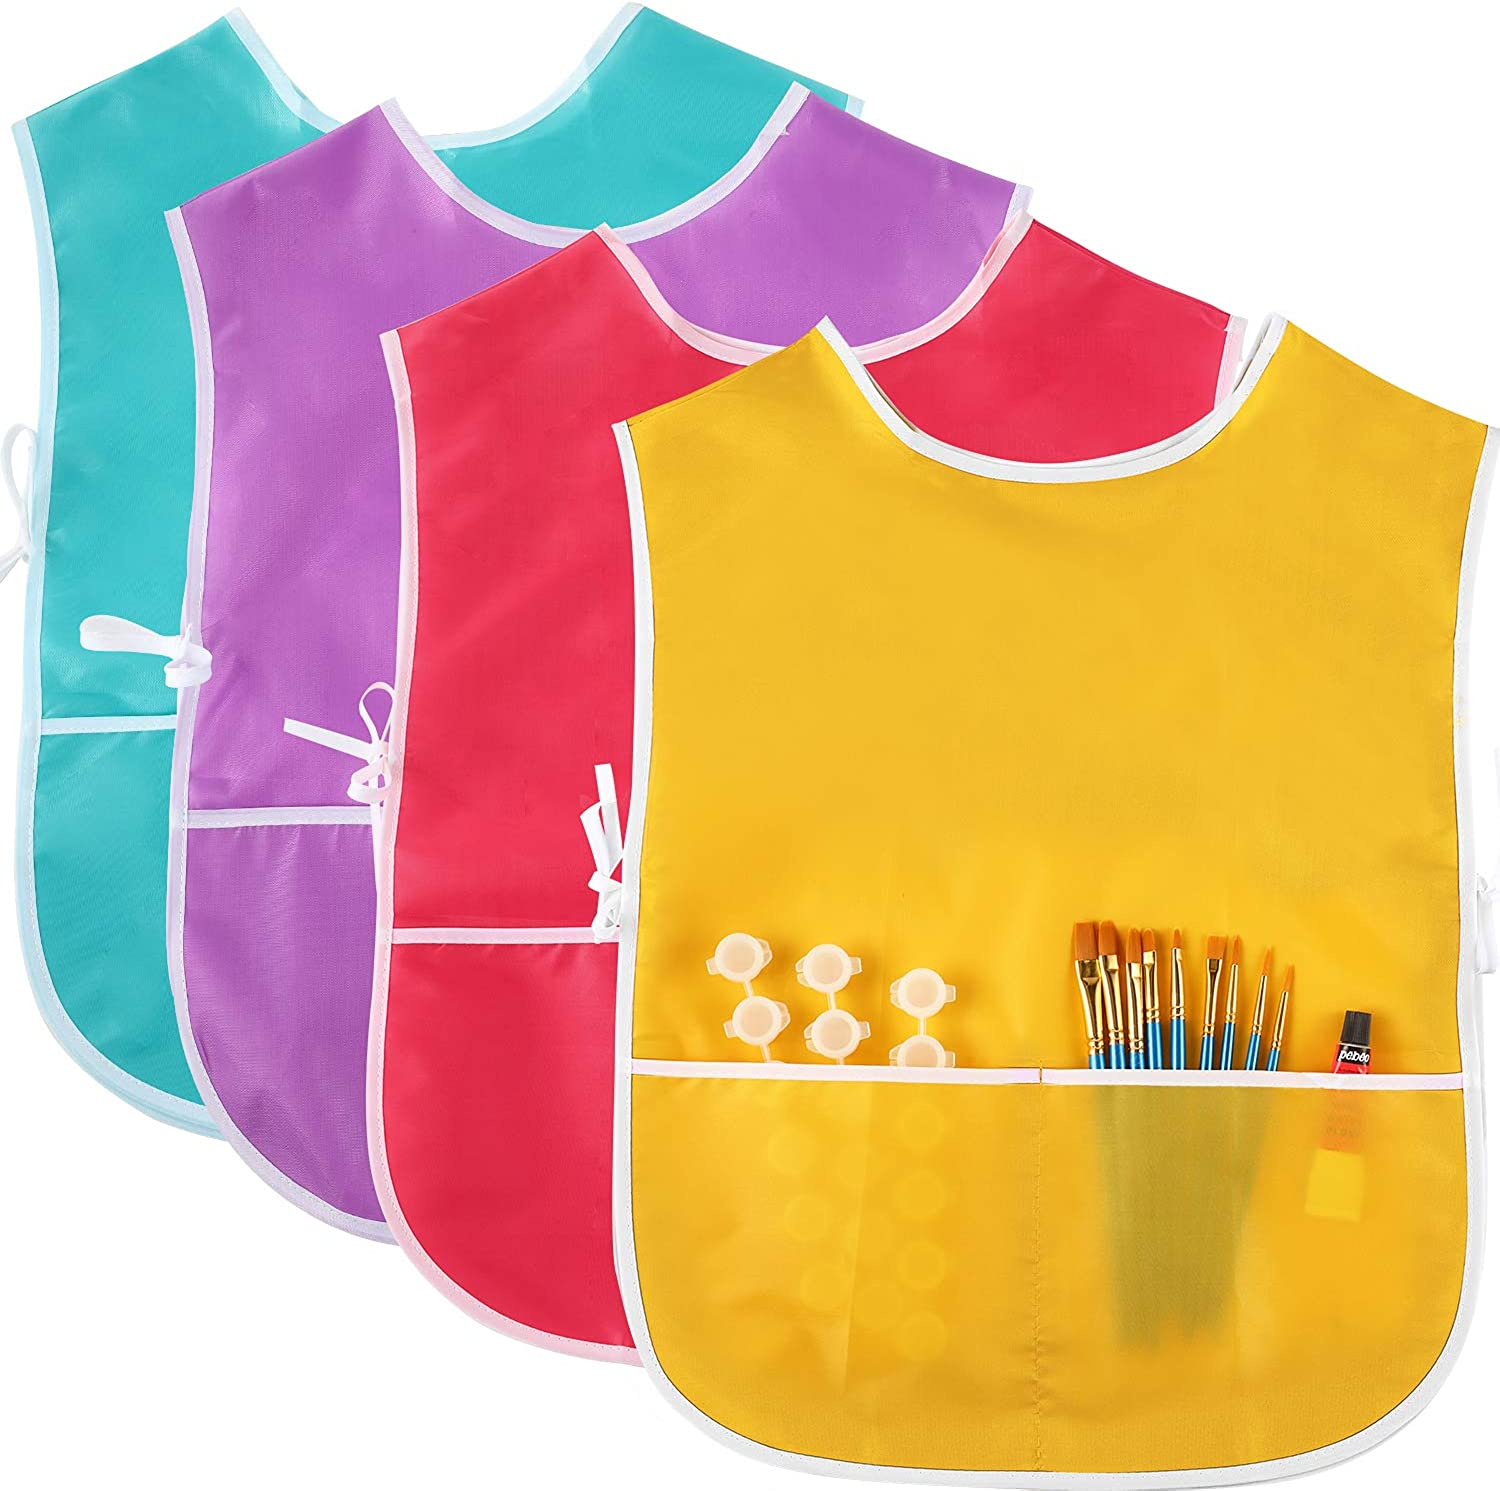 4 Pieces Art New York Mall Smock Max 63% OFF for Artist Painting Apr Waterproof Kids